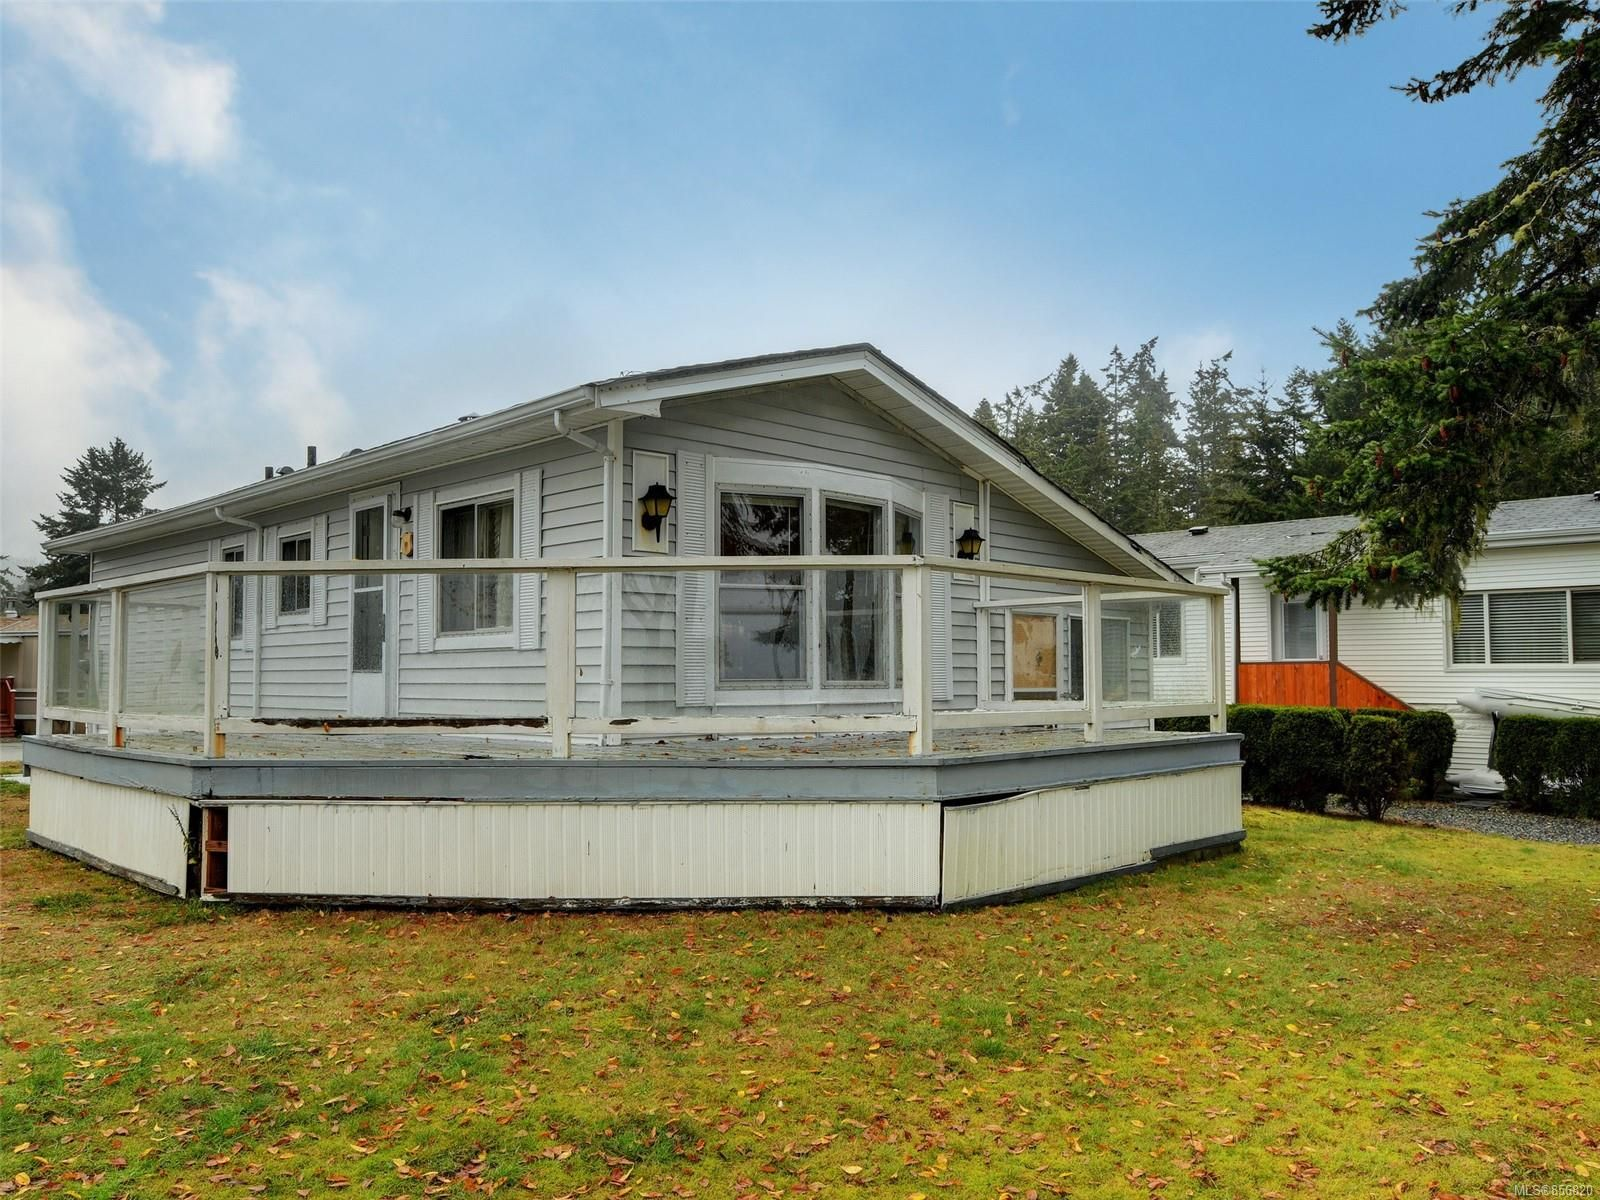 Photo 22: Photos: 25 7871 West Coast Rd in : Sk Kemp Lake Manufactured Home for sale (Sooke)  : MLS®# 856820